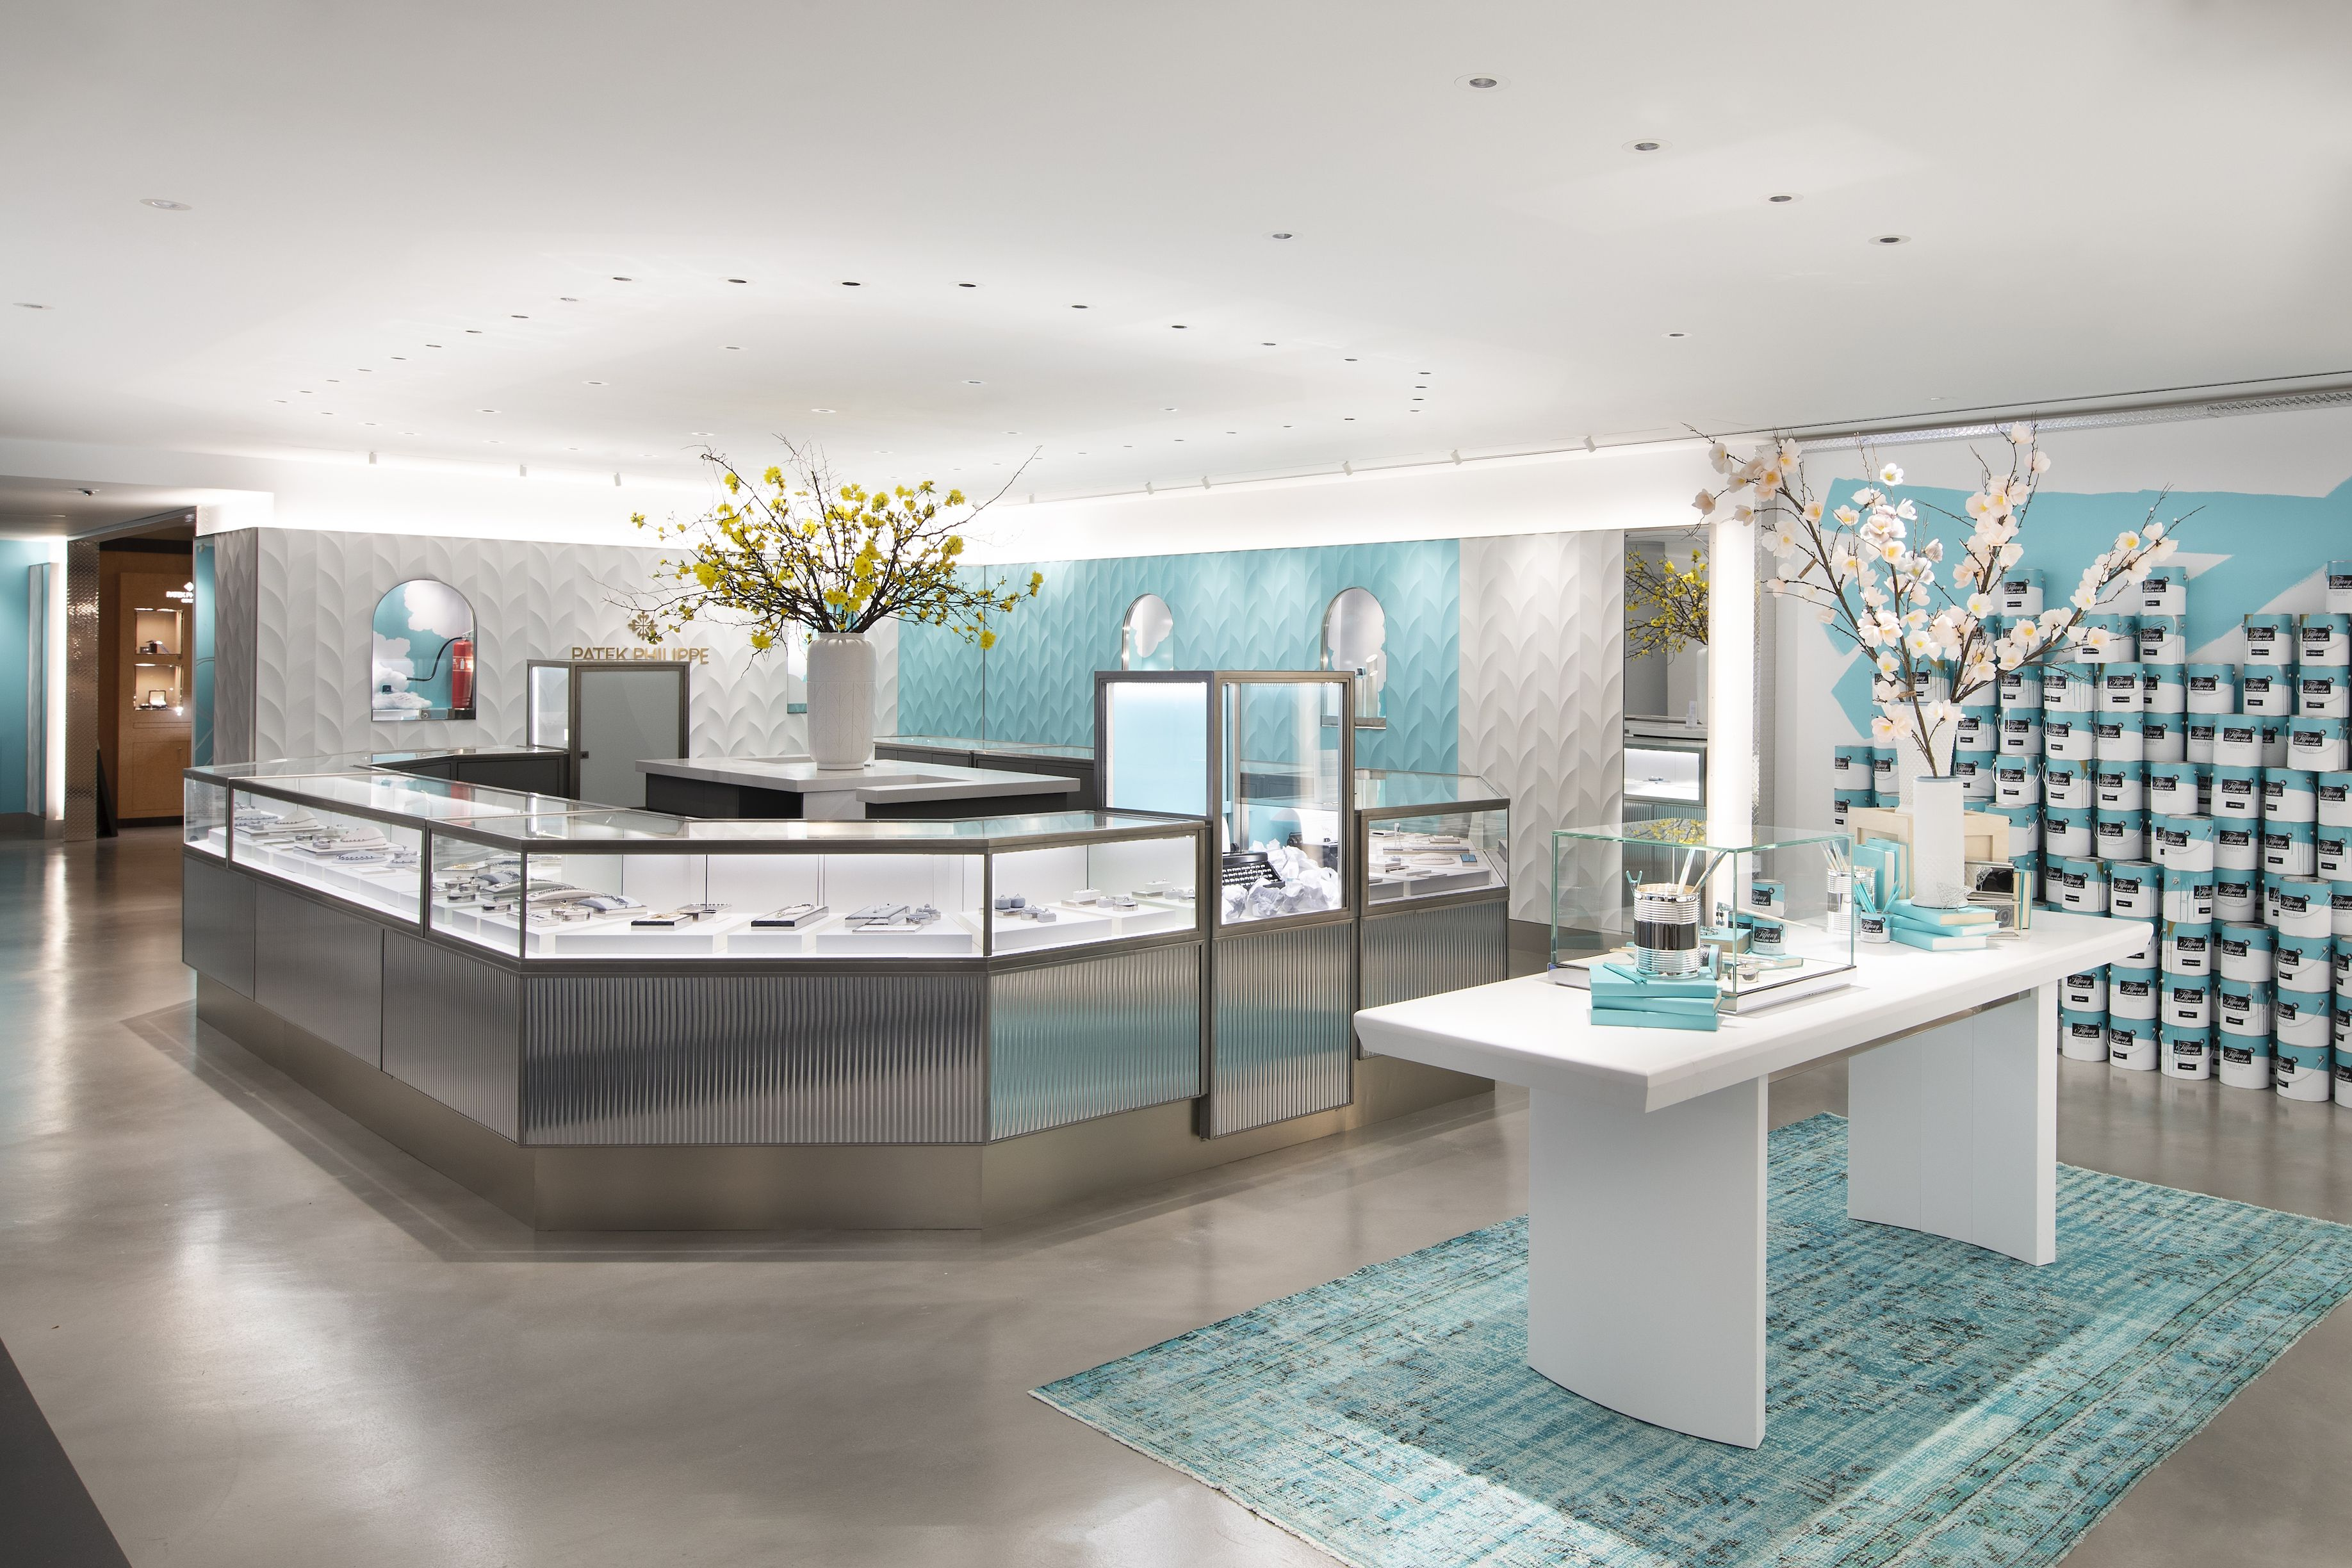 Tiffany & Co.'s New Temporary Location Opens, as Fifth Avenue Flagship Undergoes Renovation